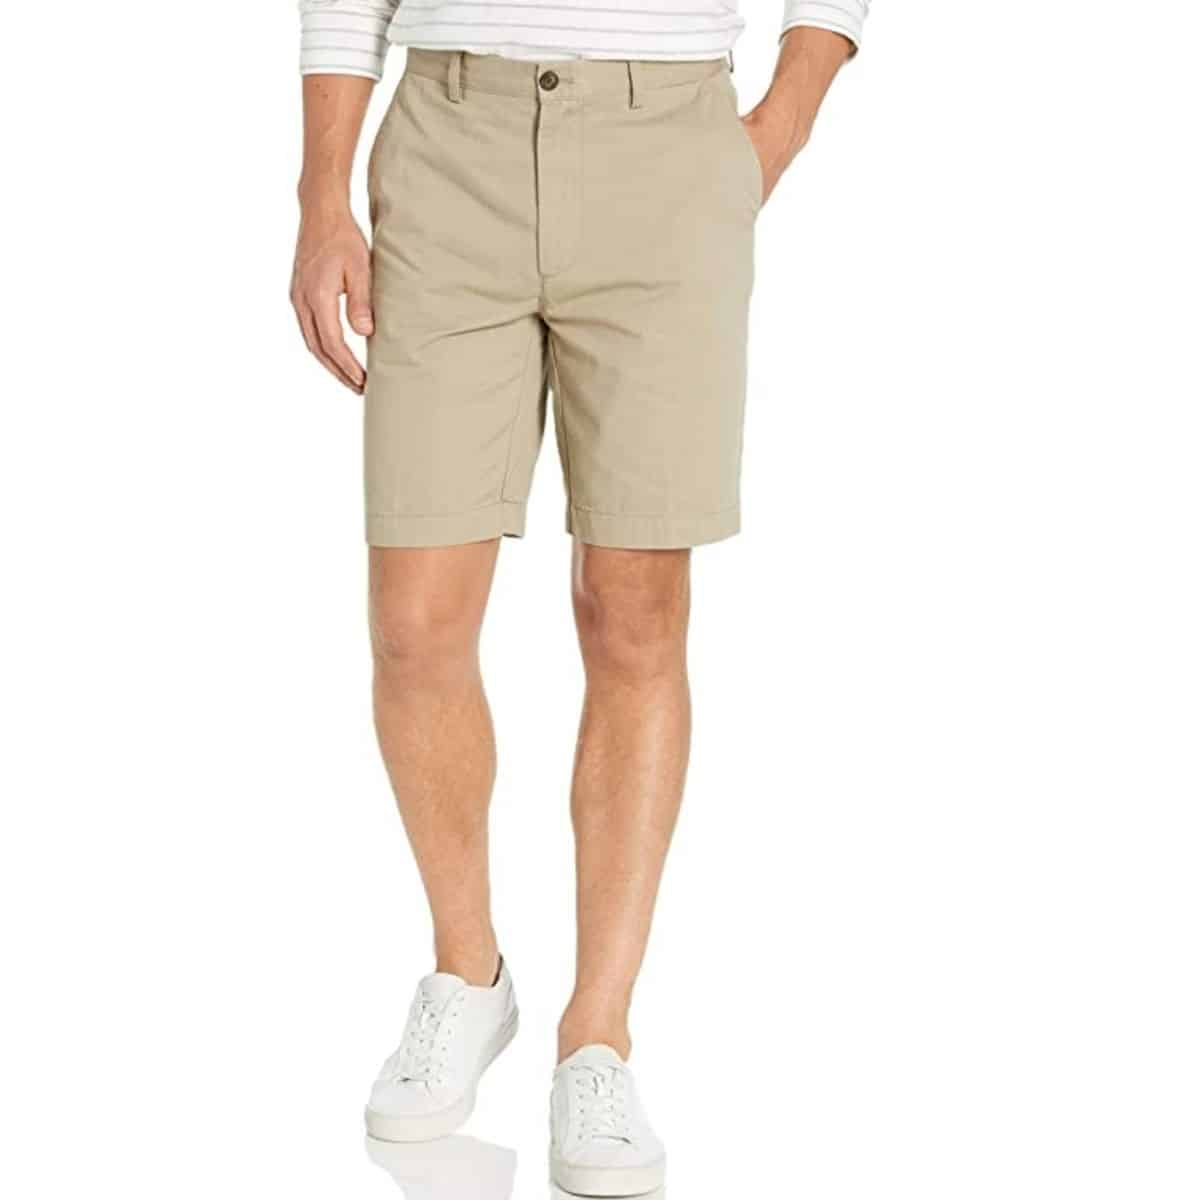 Bottom half of a person wearing shorts.